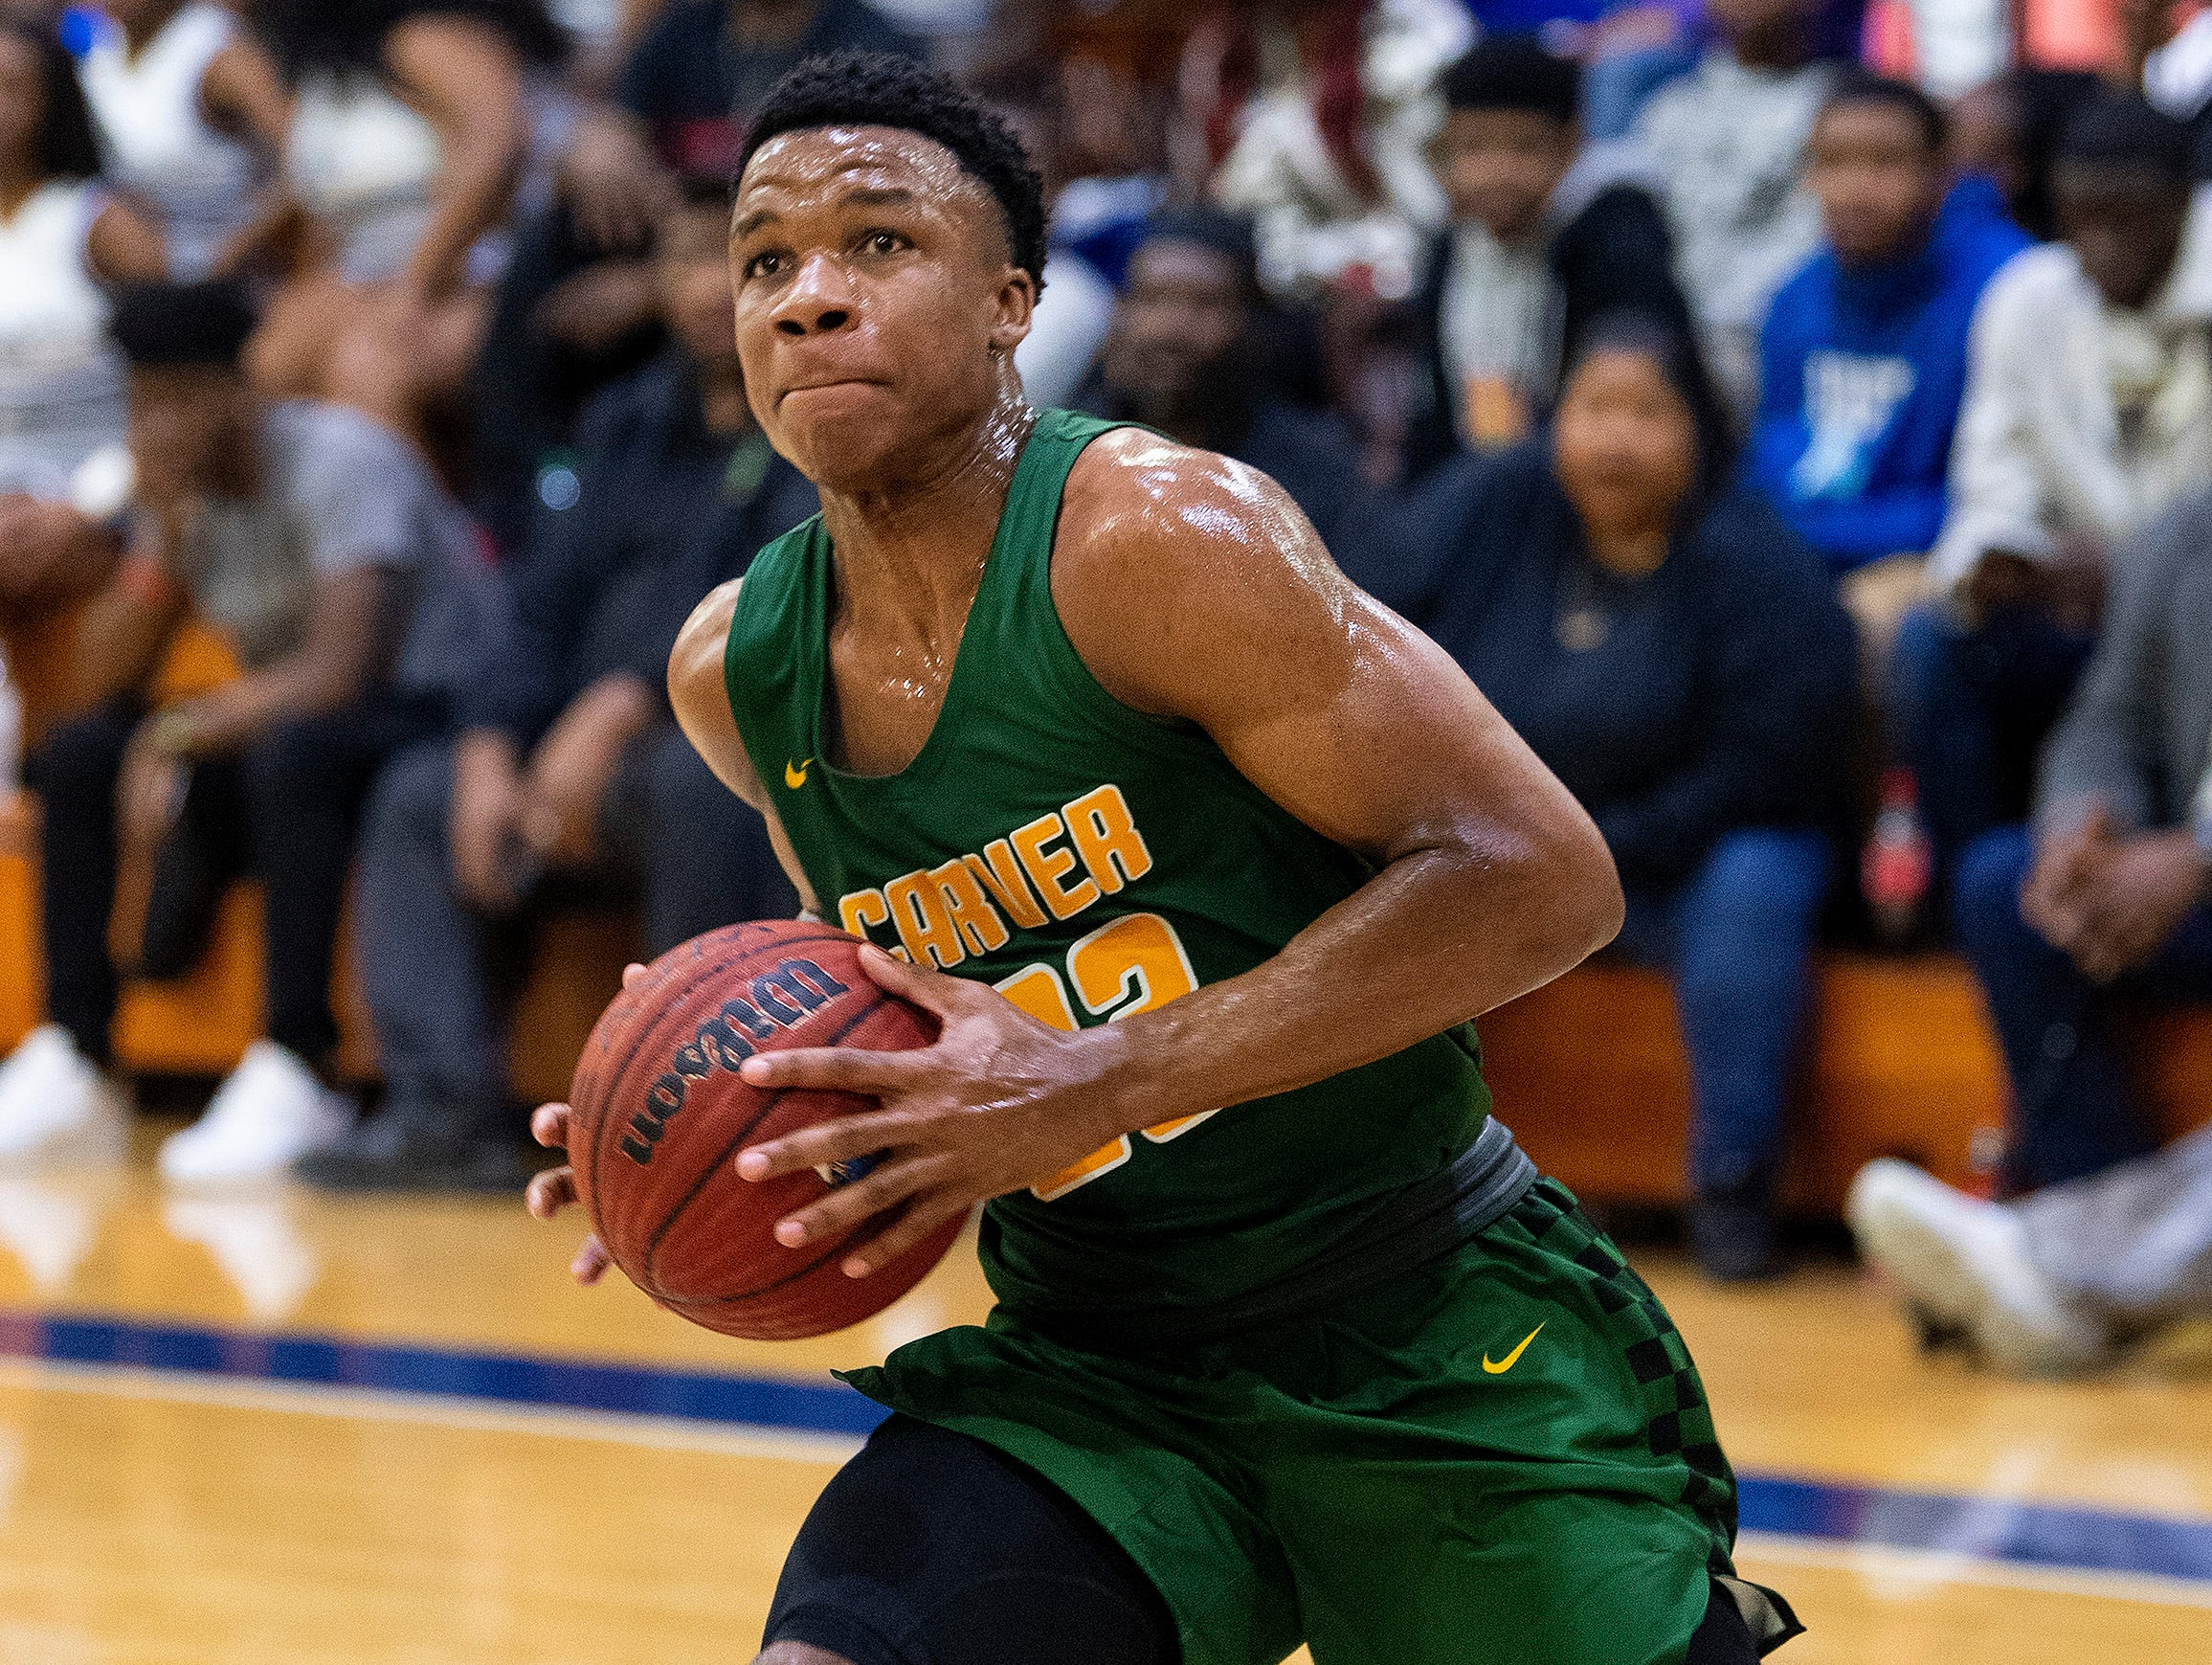 Carver's Michael Murry (23) against Lanier at the Lanier campus in Montgomery, Ala., on Friday January 11, 2019.